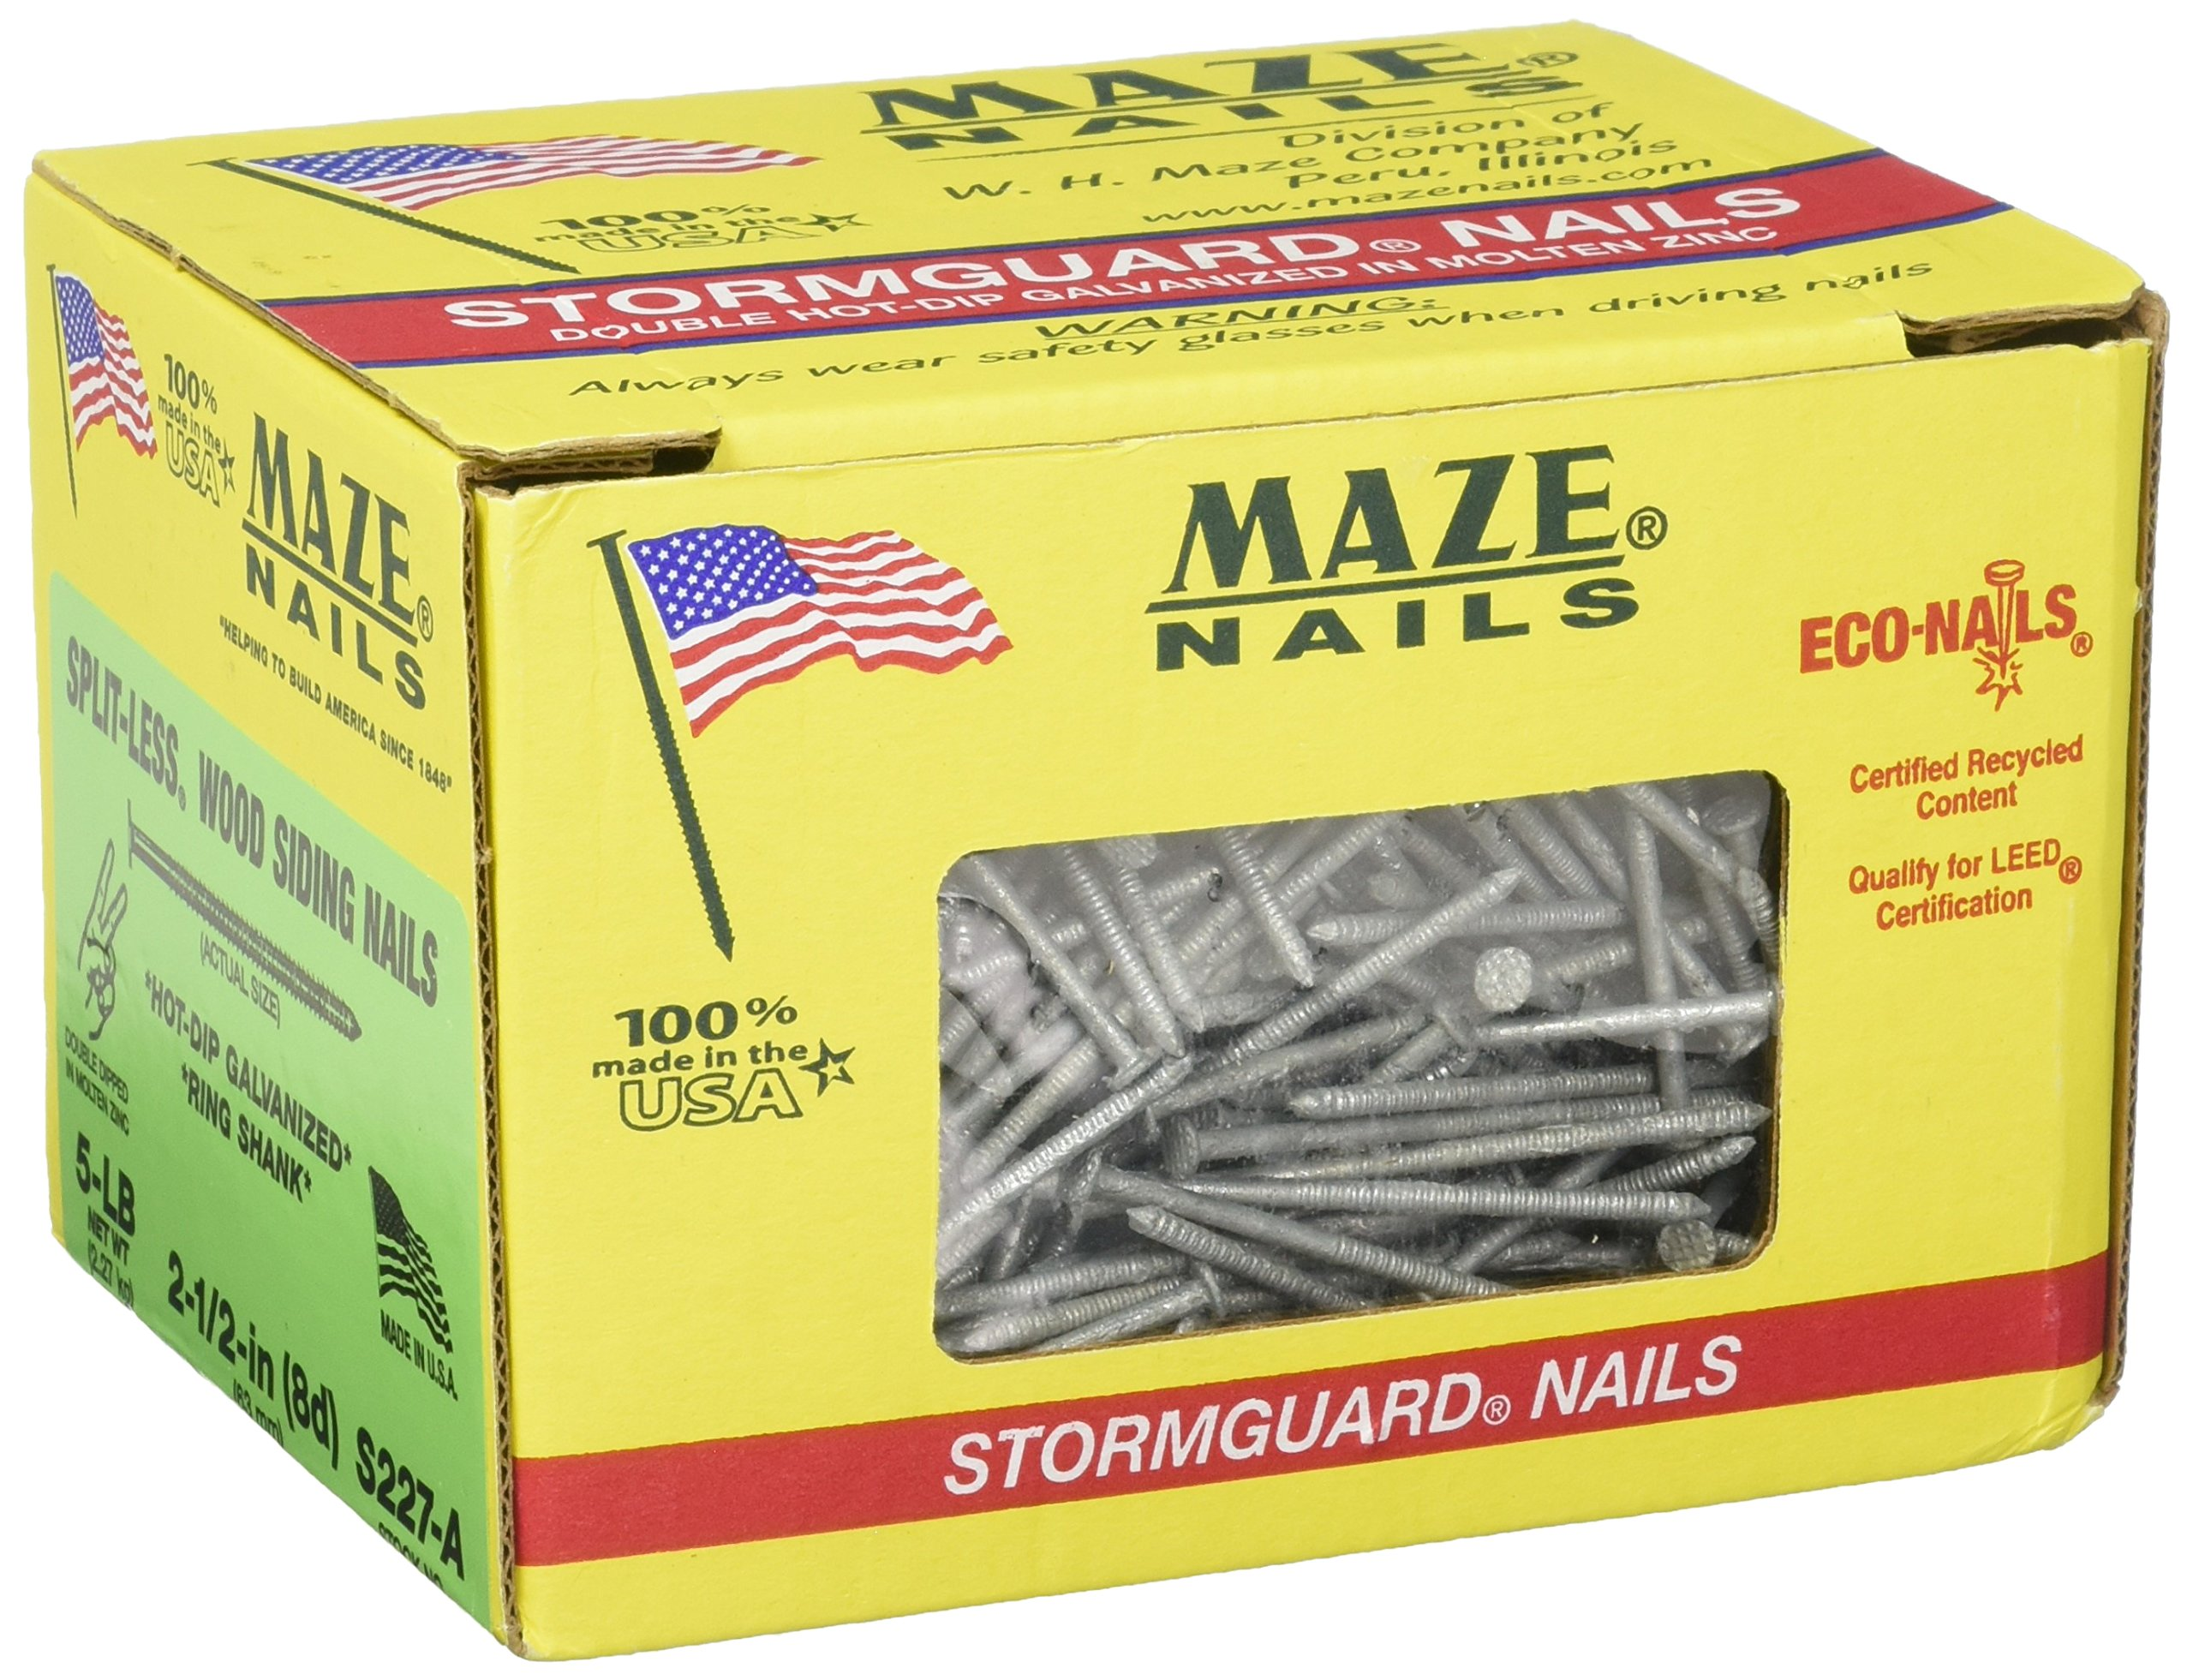 MAZE NAILS S227A-5 Double Hot Dipped Ring Shank Split Less Siding Nail, 5-Pound 8D 2-1/2-Inch